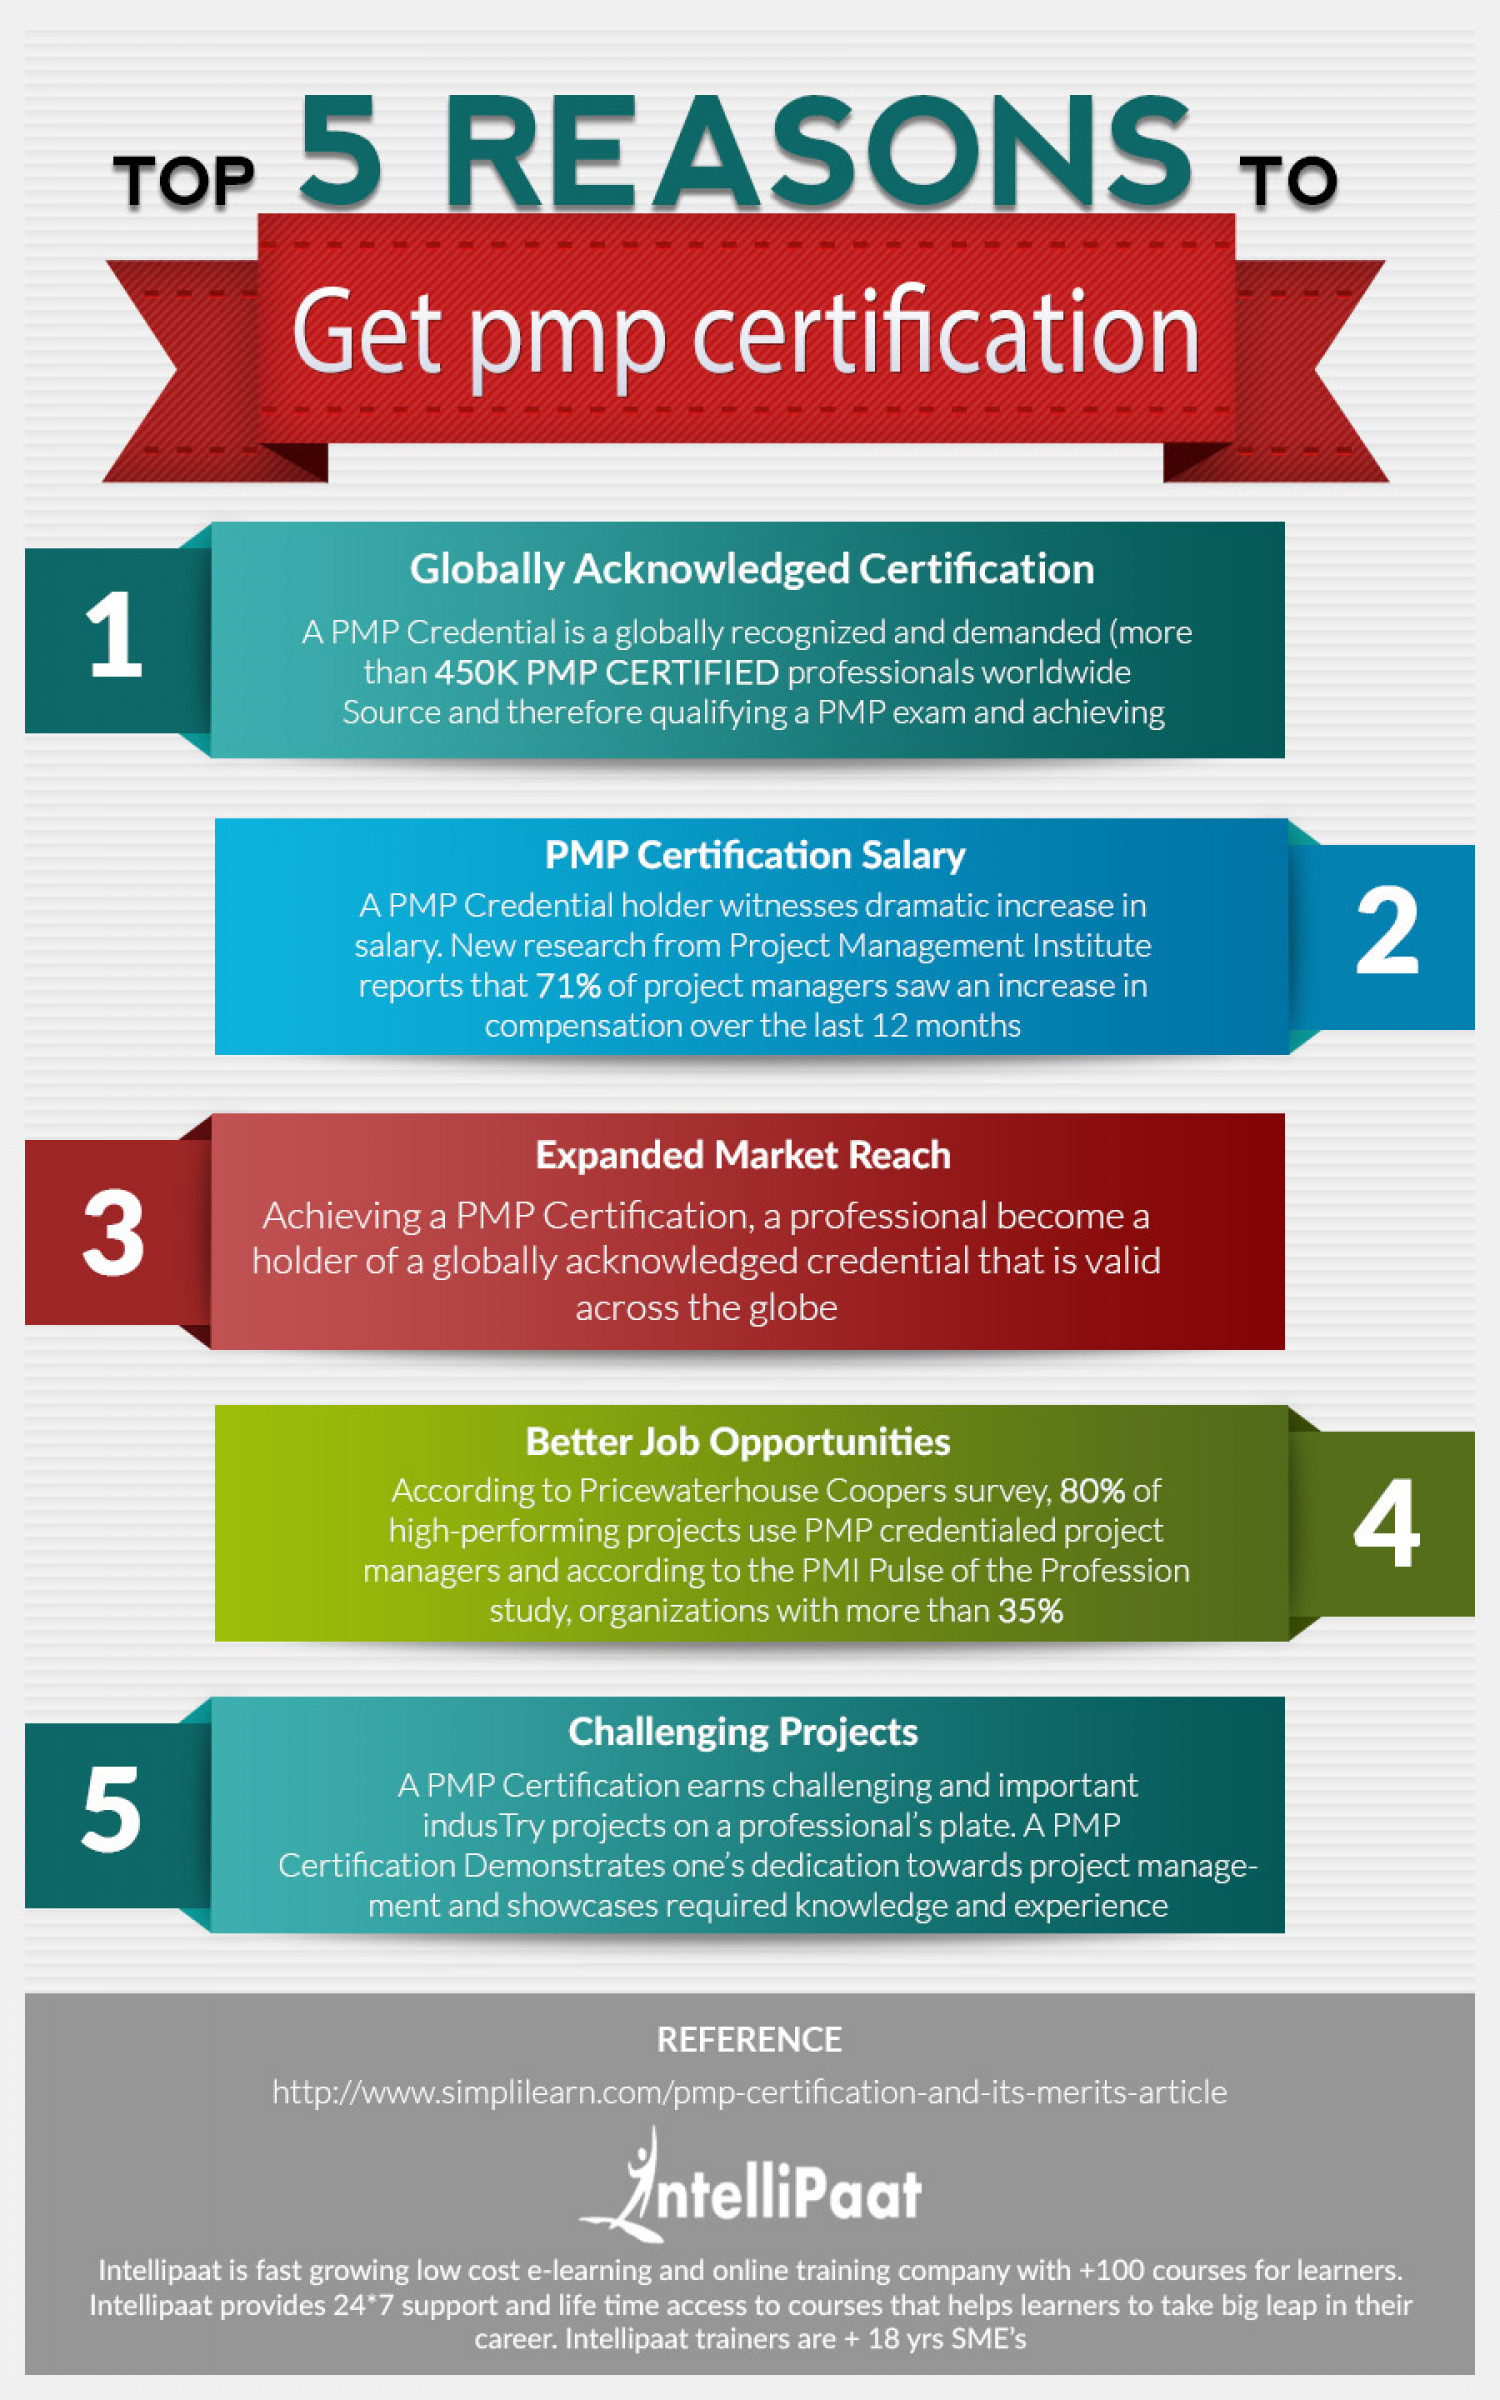 Top 5 Reasons To Get Pmp Certification Visual